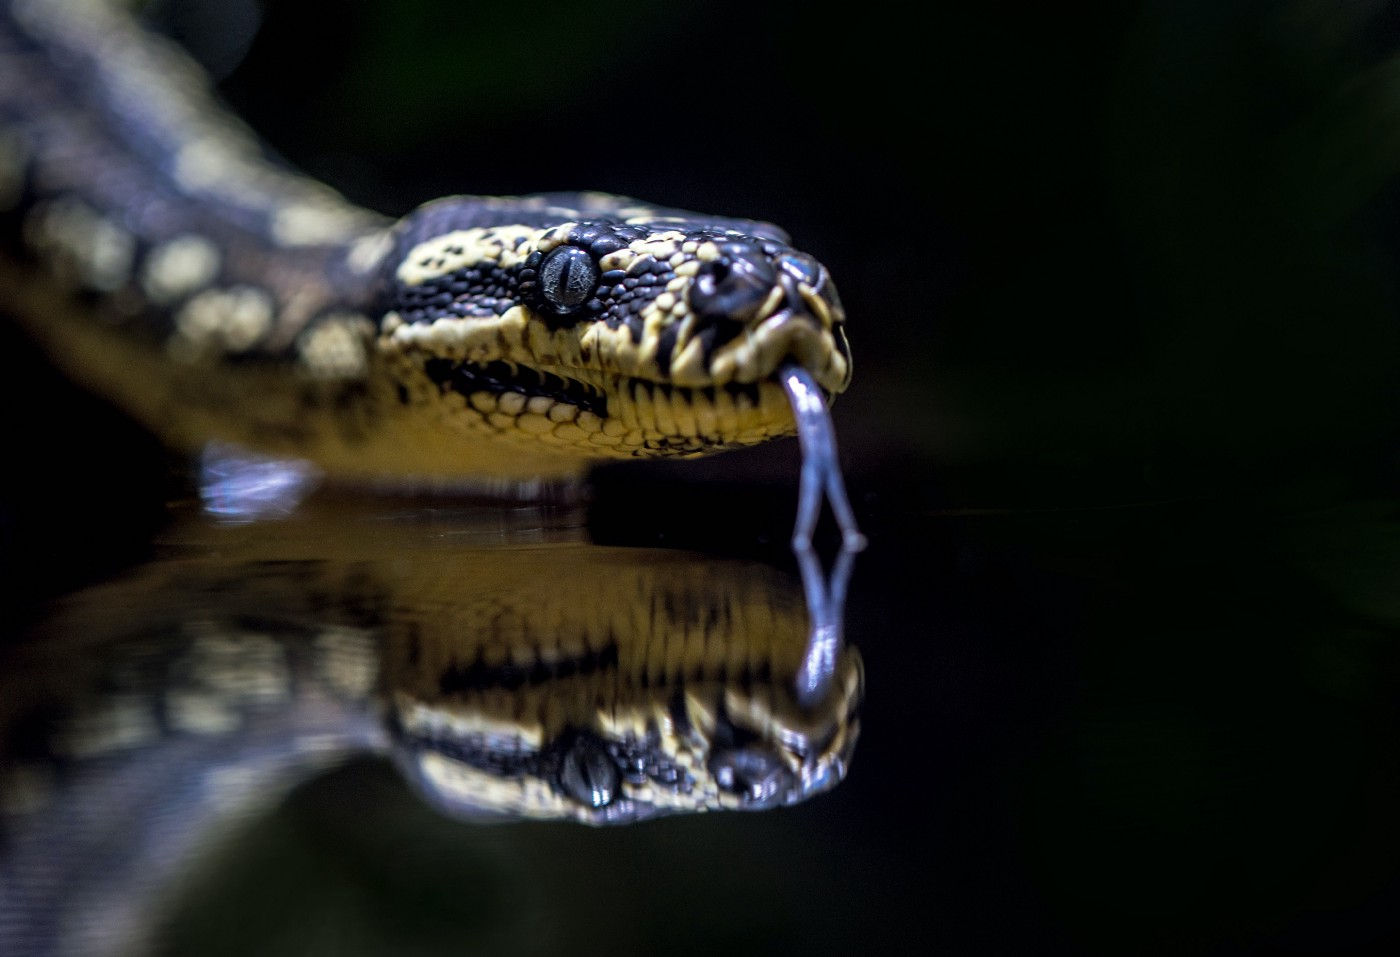 A Jungle carpet python's head reflected in water at the Cairns aquarium, Australia.